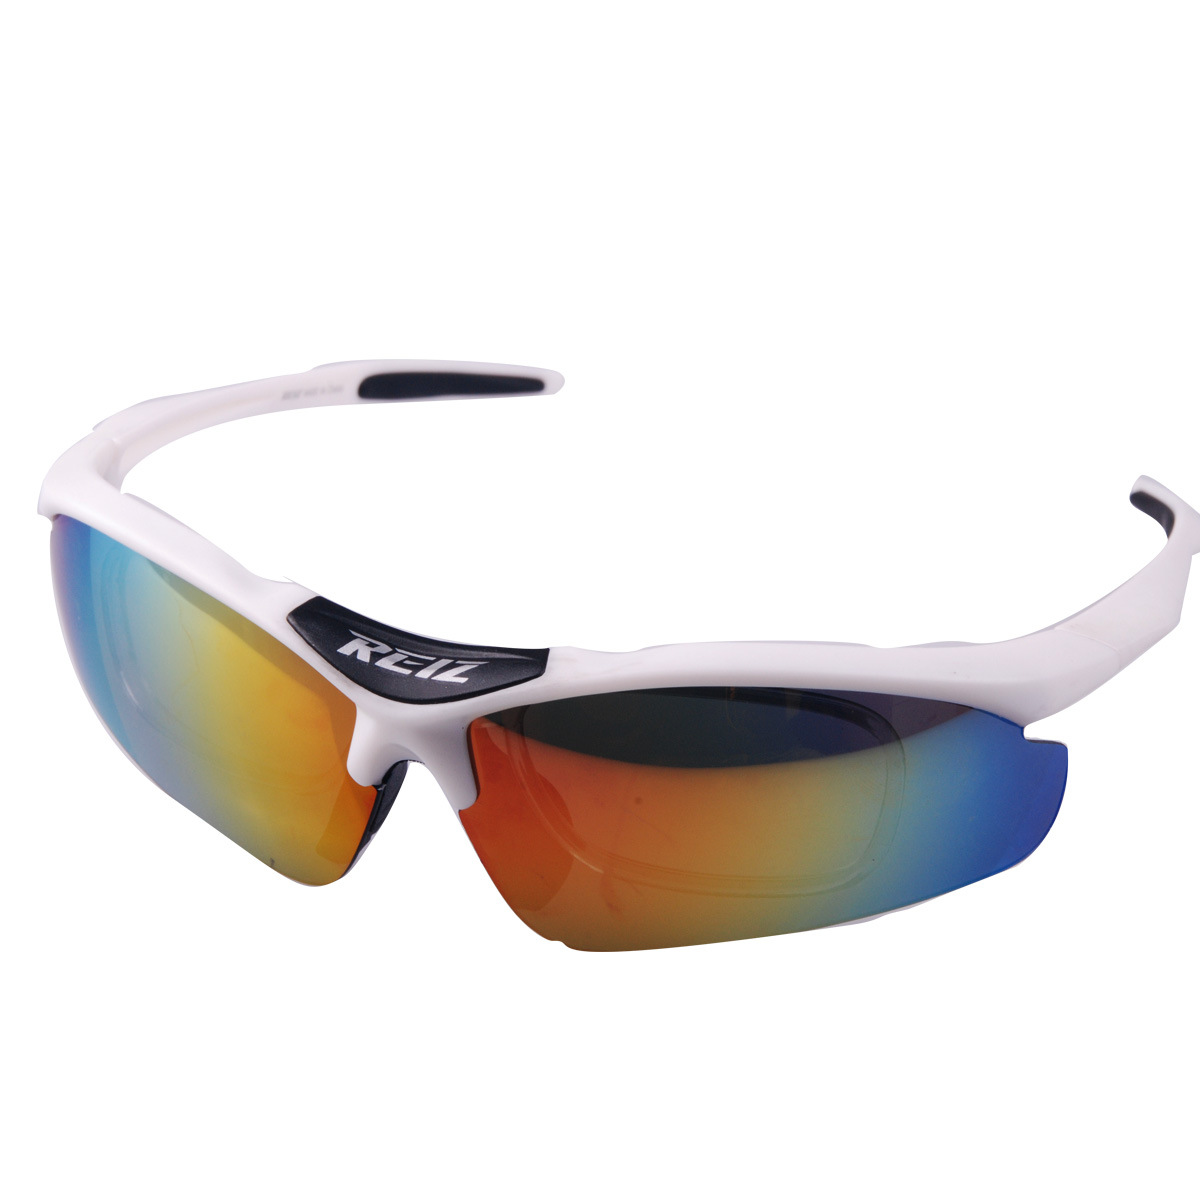 Mumian Rui Zhi Riding Outdoor Glasses Protection Myopia Polarized Light Bicycle Glass Rz102